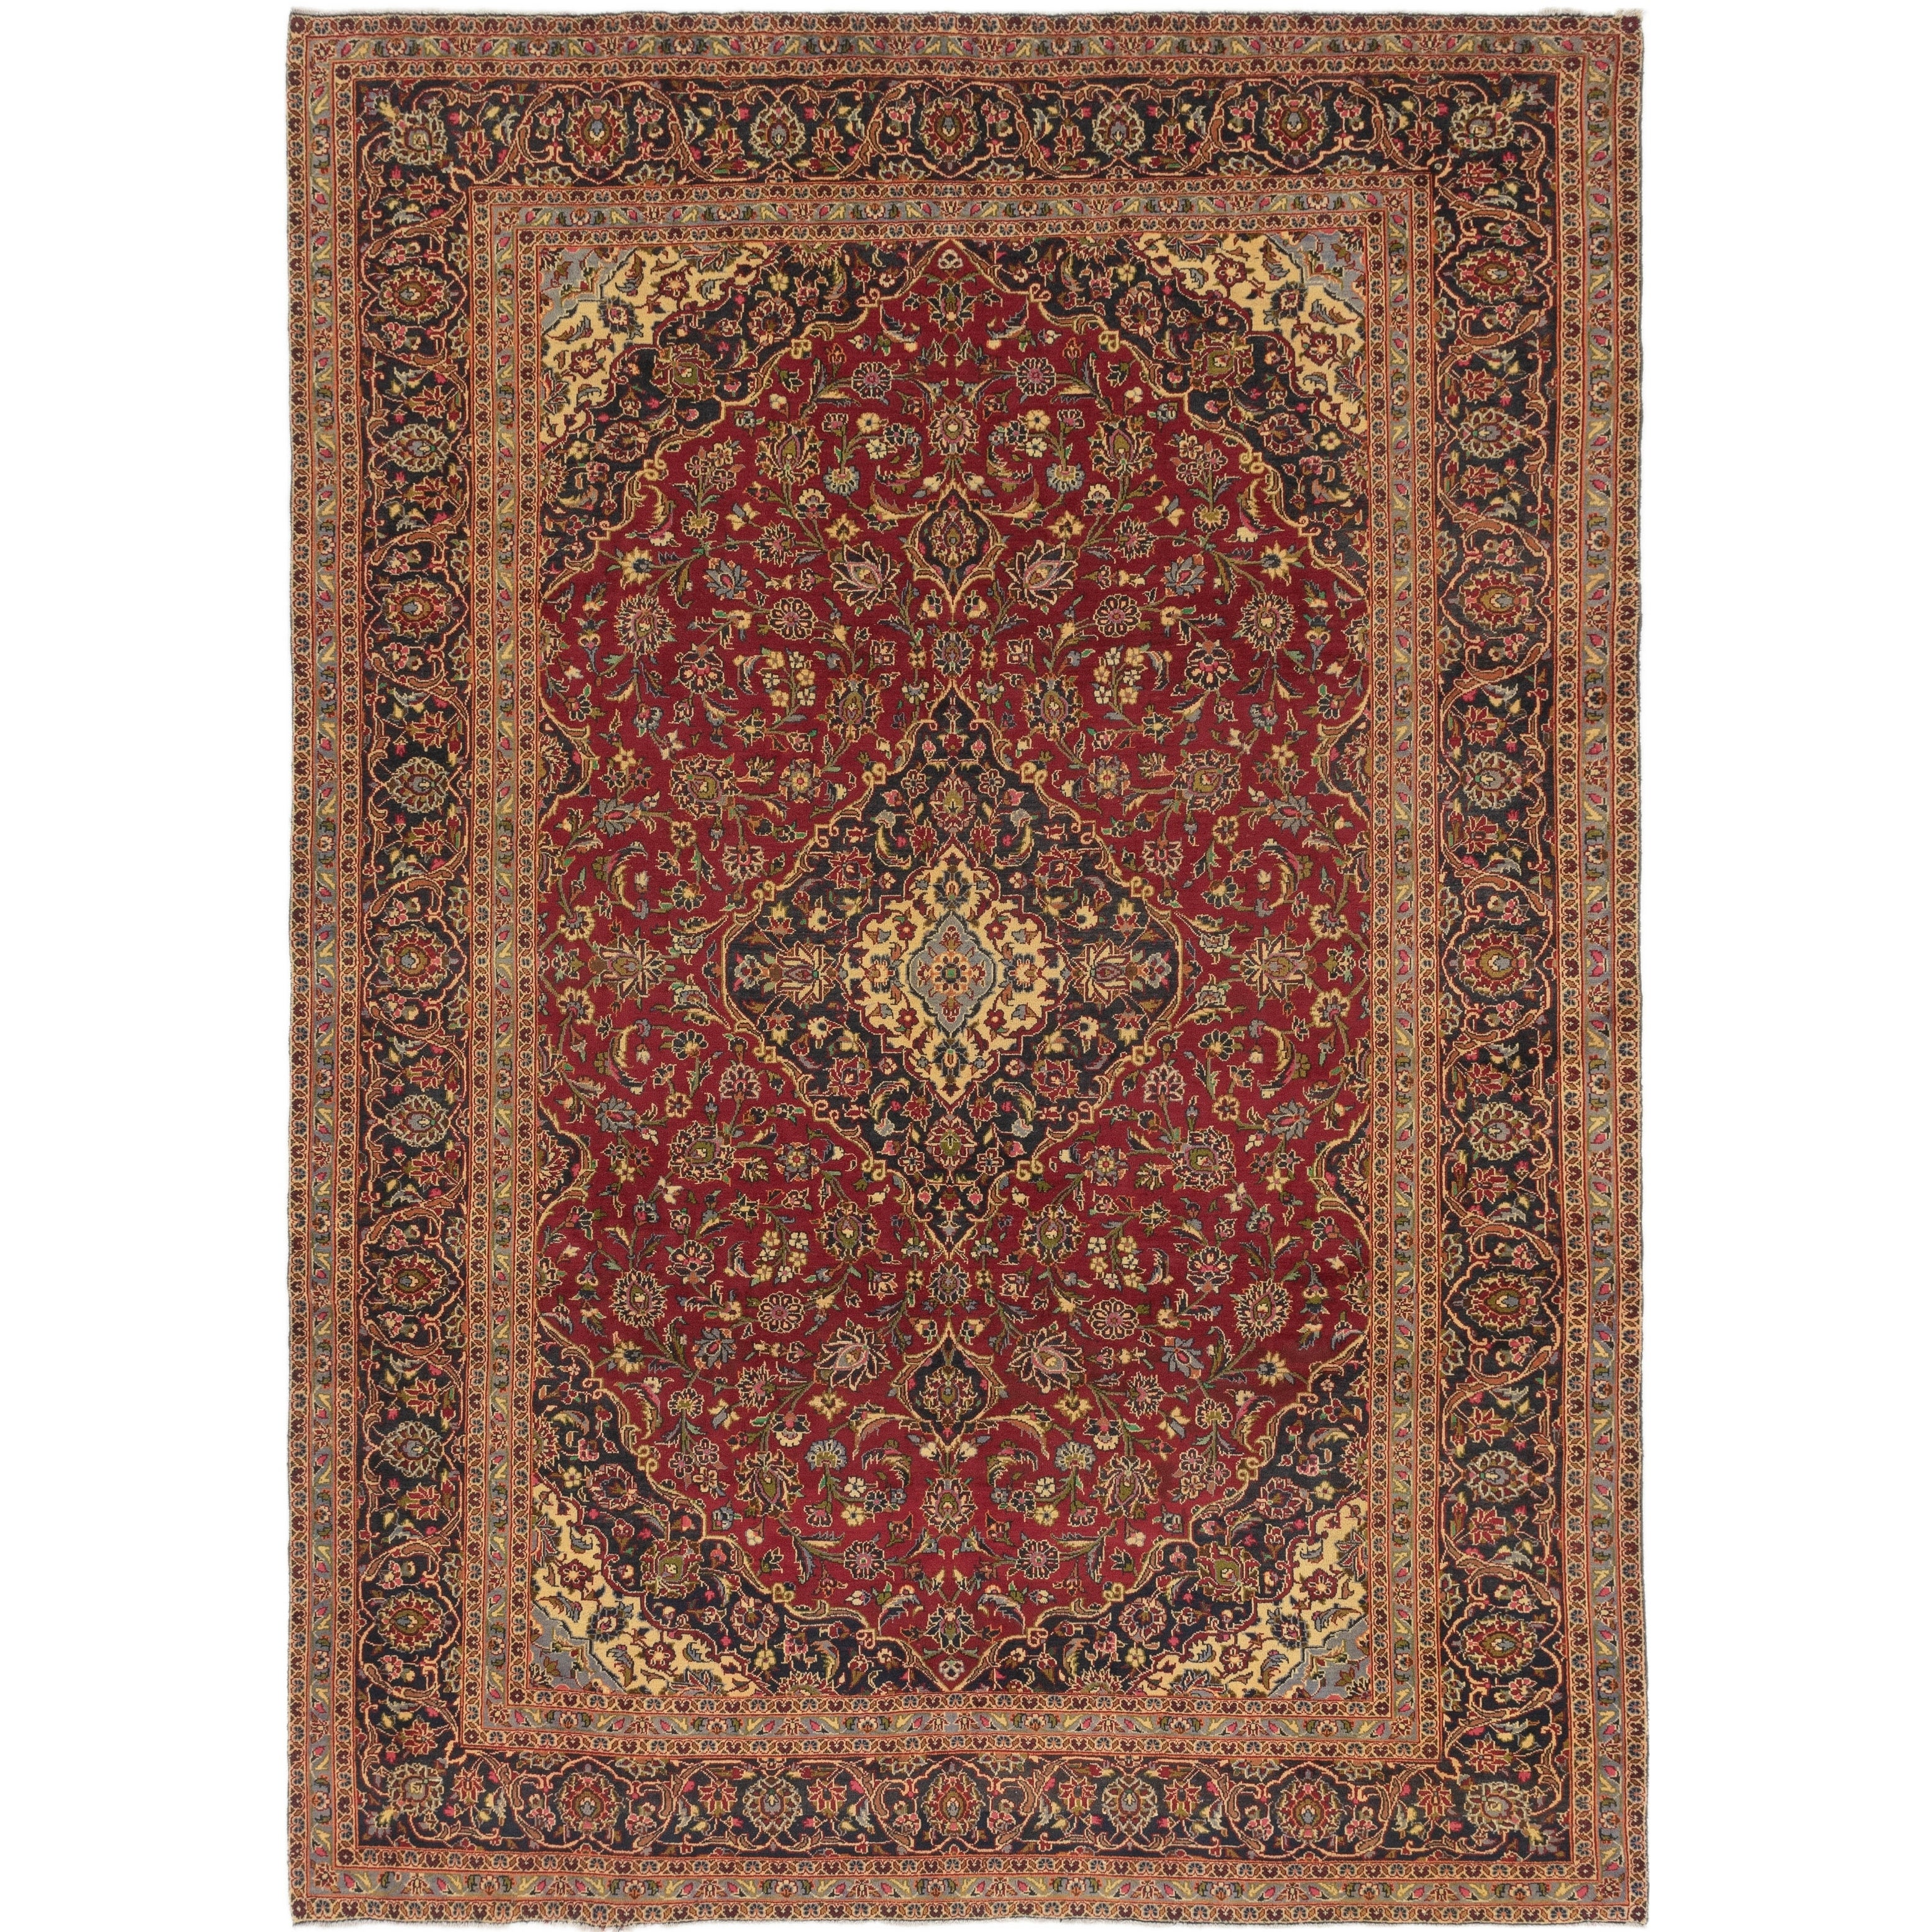 Hand Knotted Kashan Wool Area Rug - 9 4 x 13 2 (Red - 9 4 x 13 2)